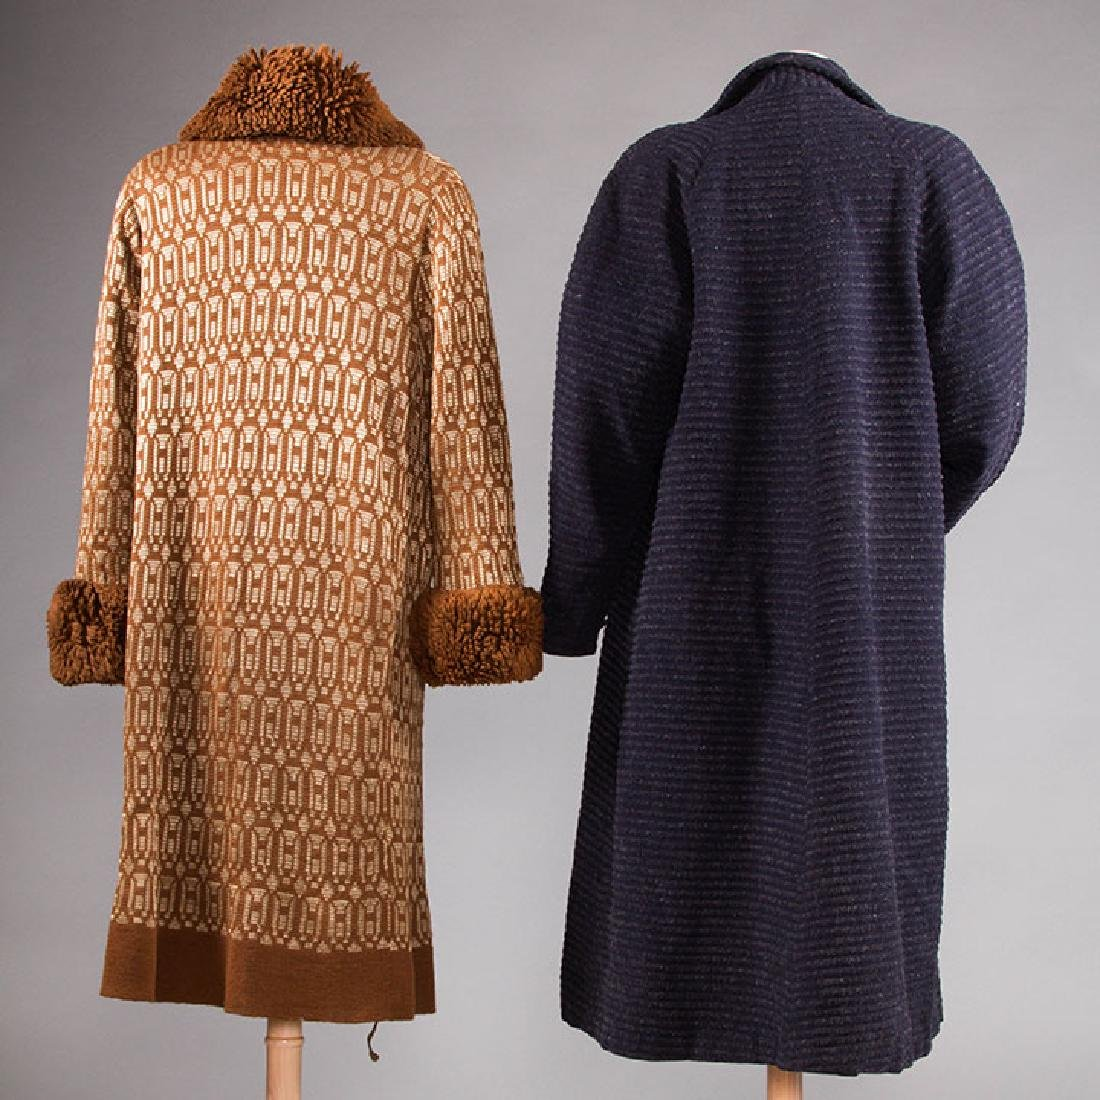 2 WOOL DAY COATS, 1920s & 1930s - 3